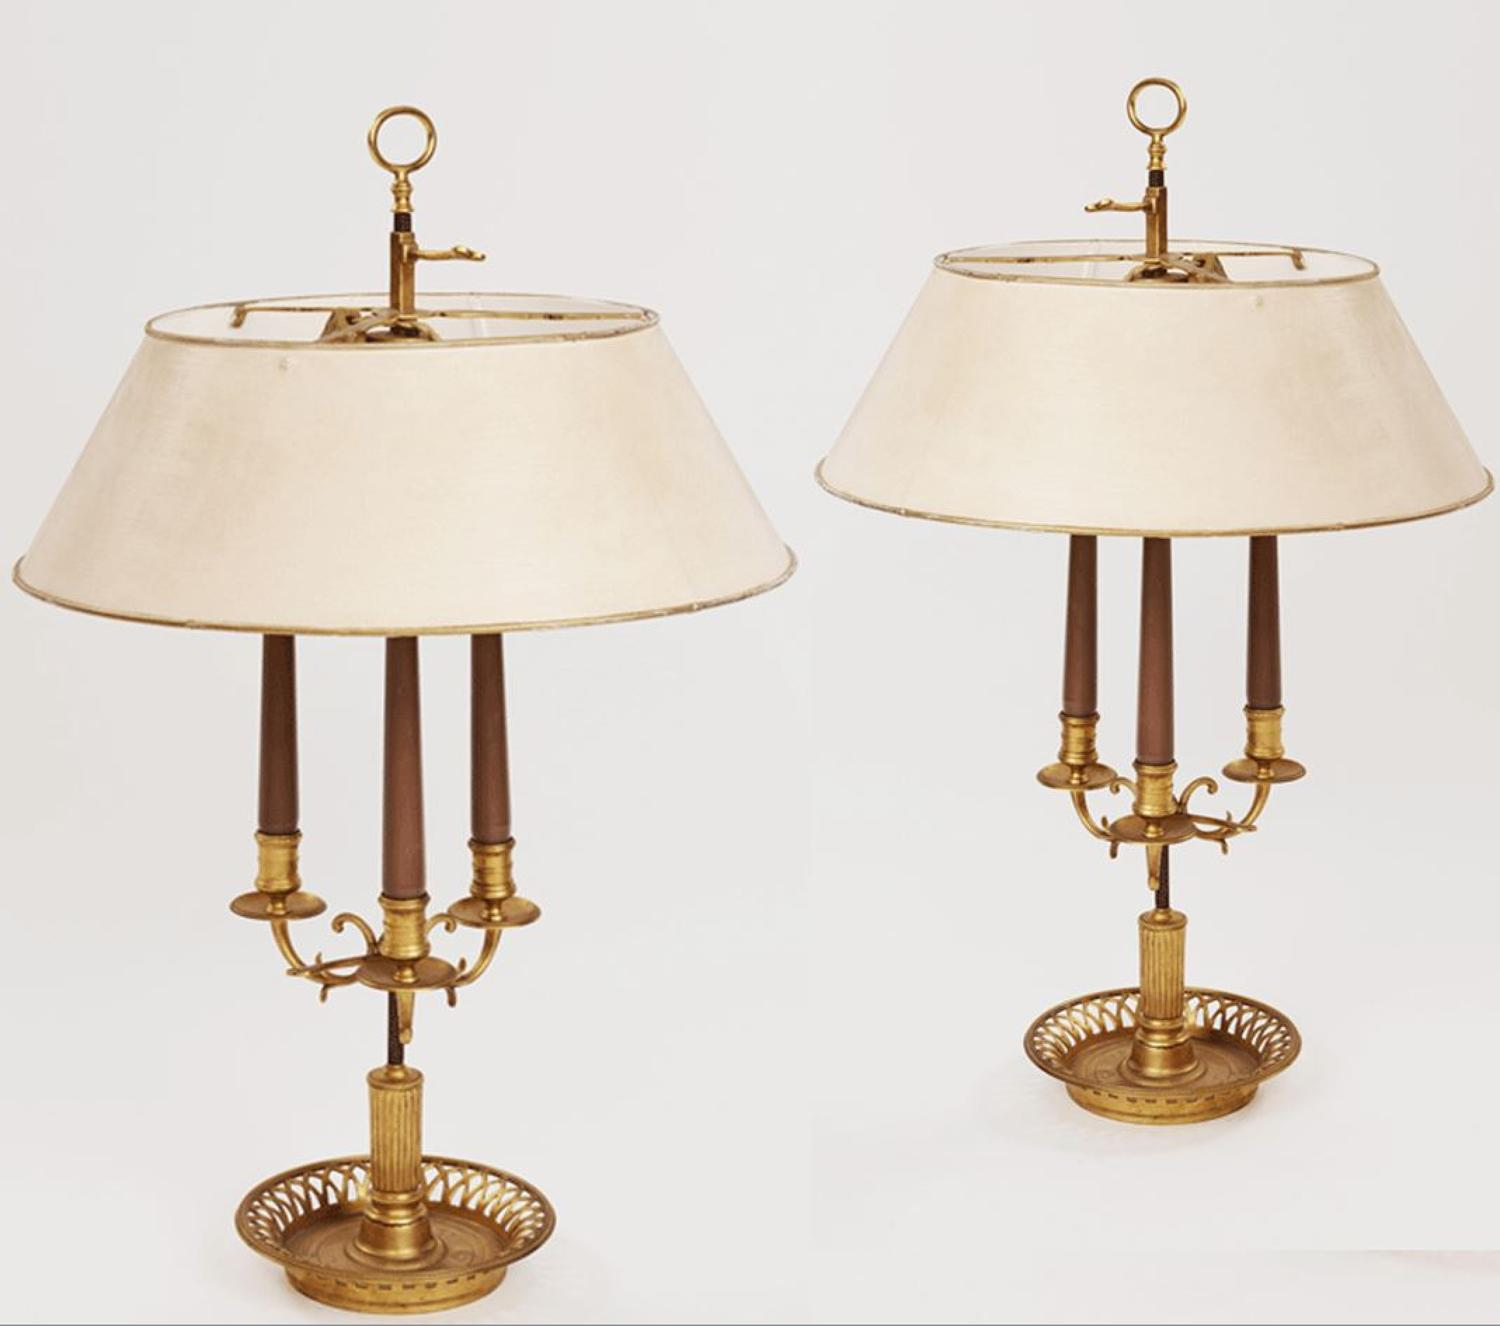 18 th century Bouilotte Lamps